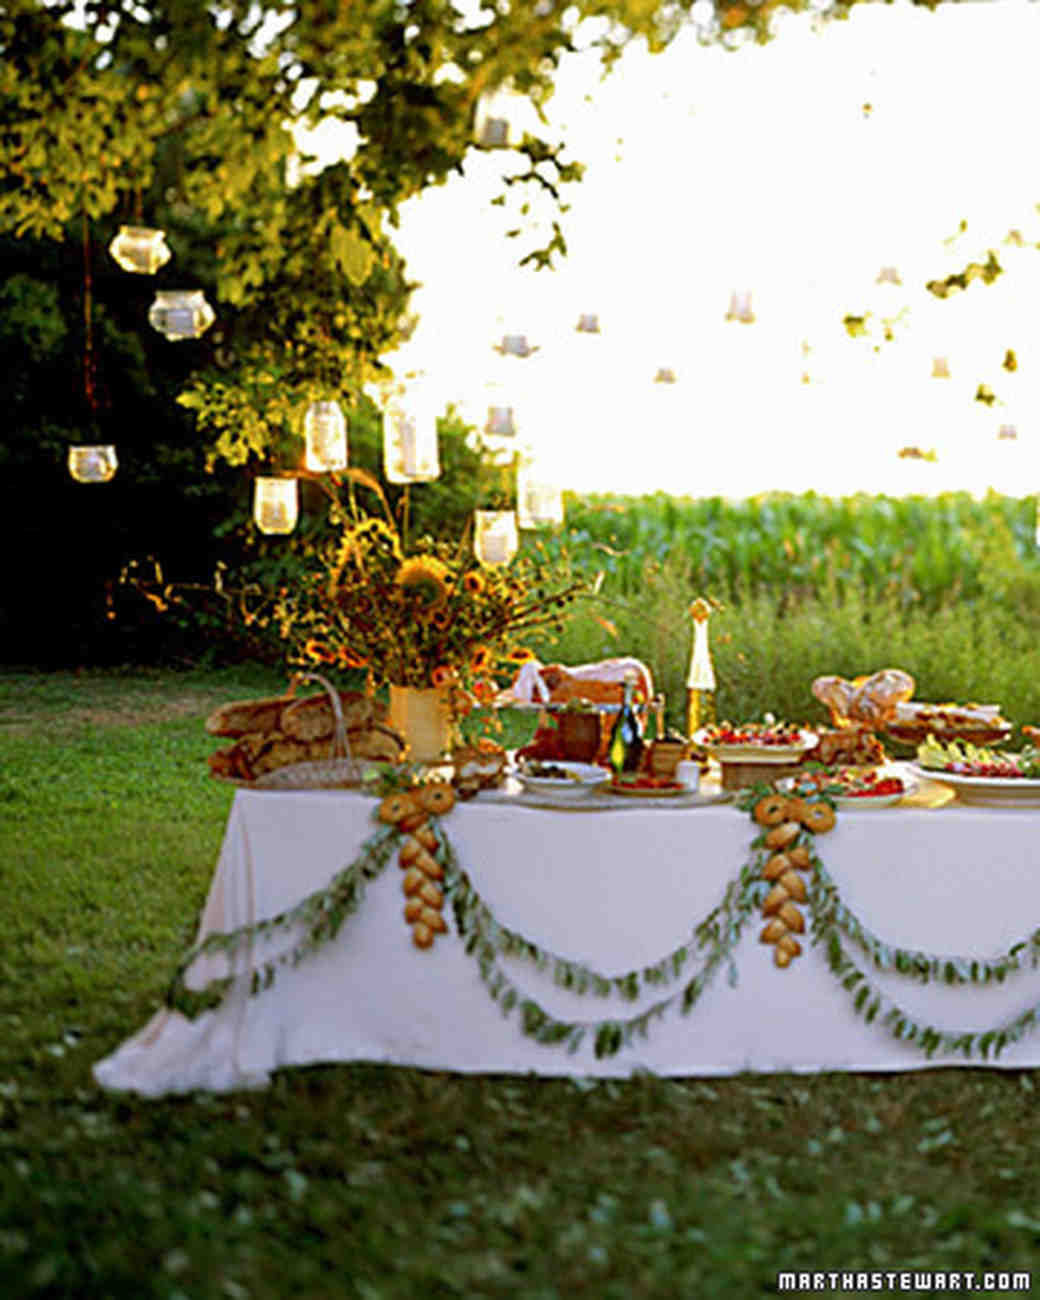 Rustic Country Wedding Ideas | Martha Stewart Weddings - photo#38